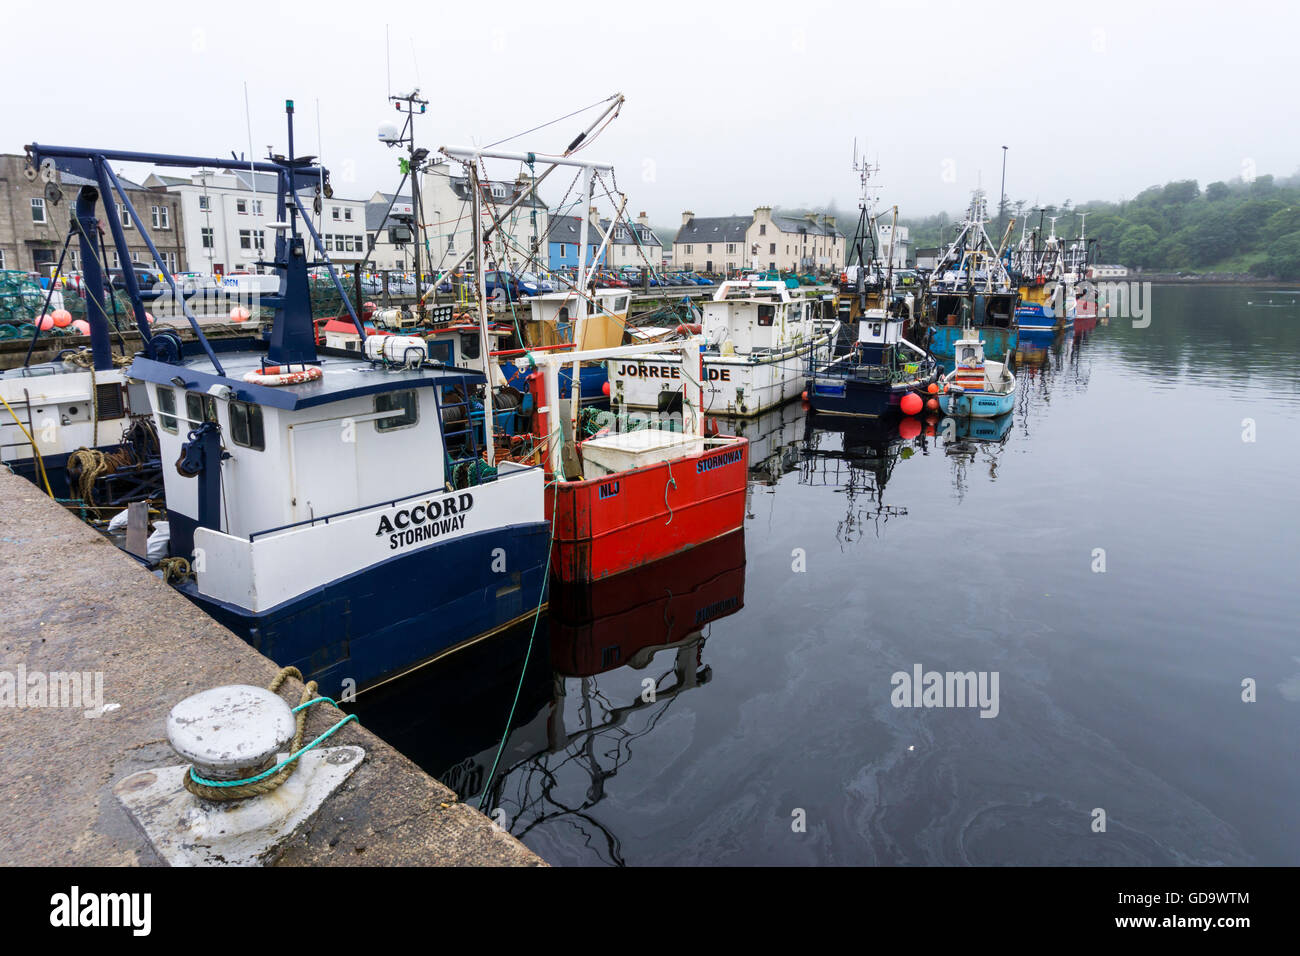 Scottish fishing boats moored in Stornoway Harbour on the Isle of Lewis in the Outer Hebrides. - Stock Image